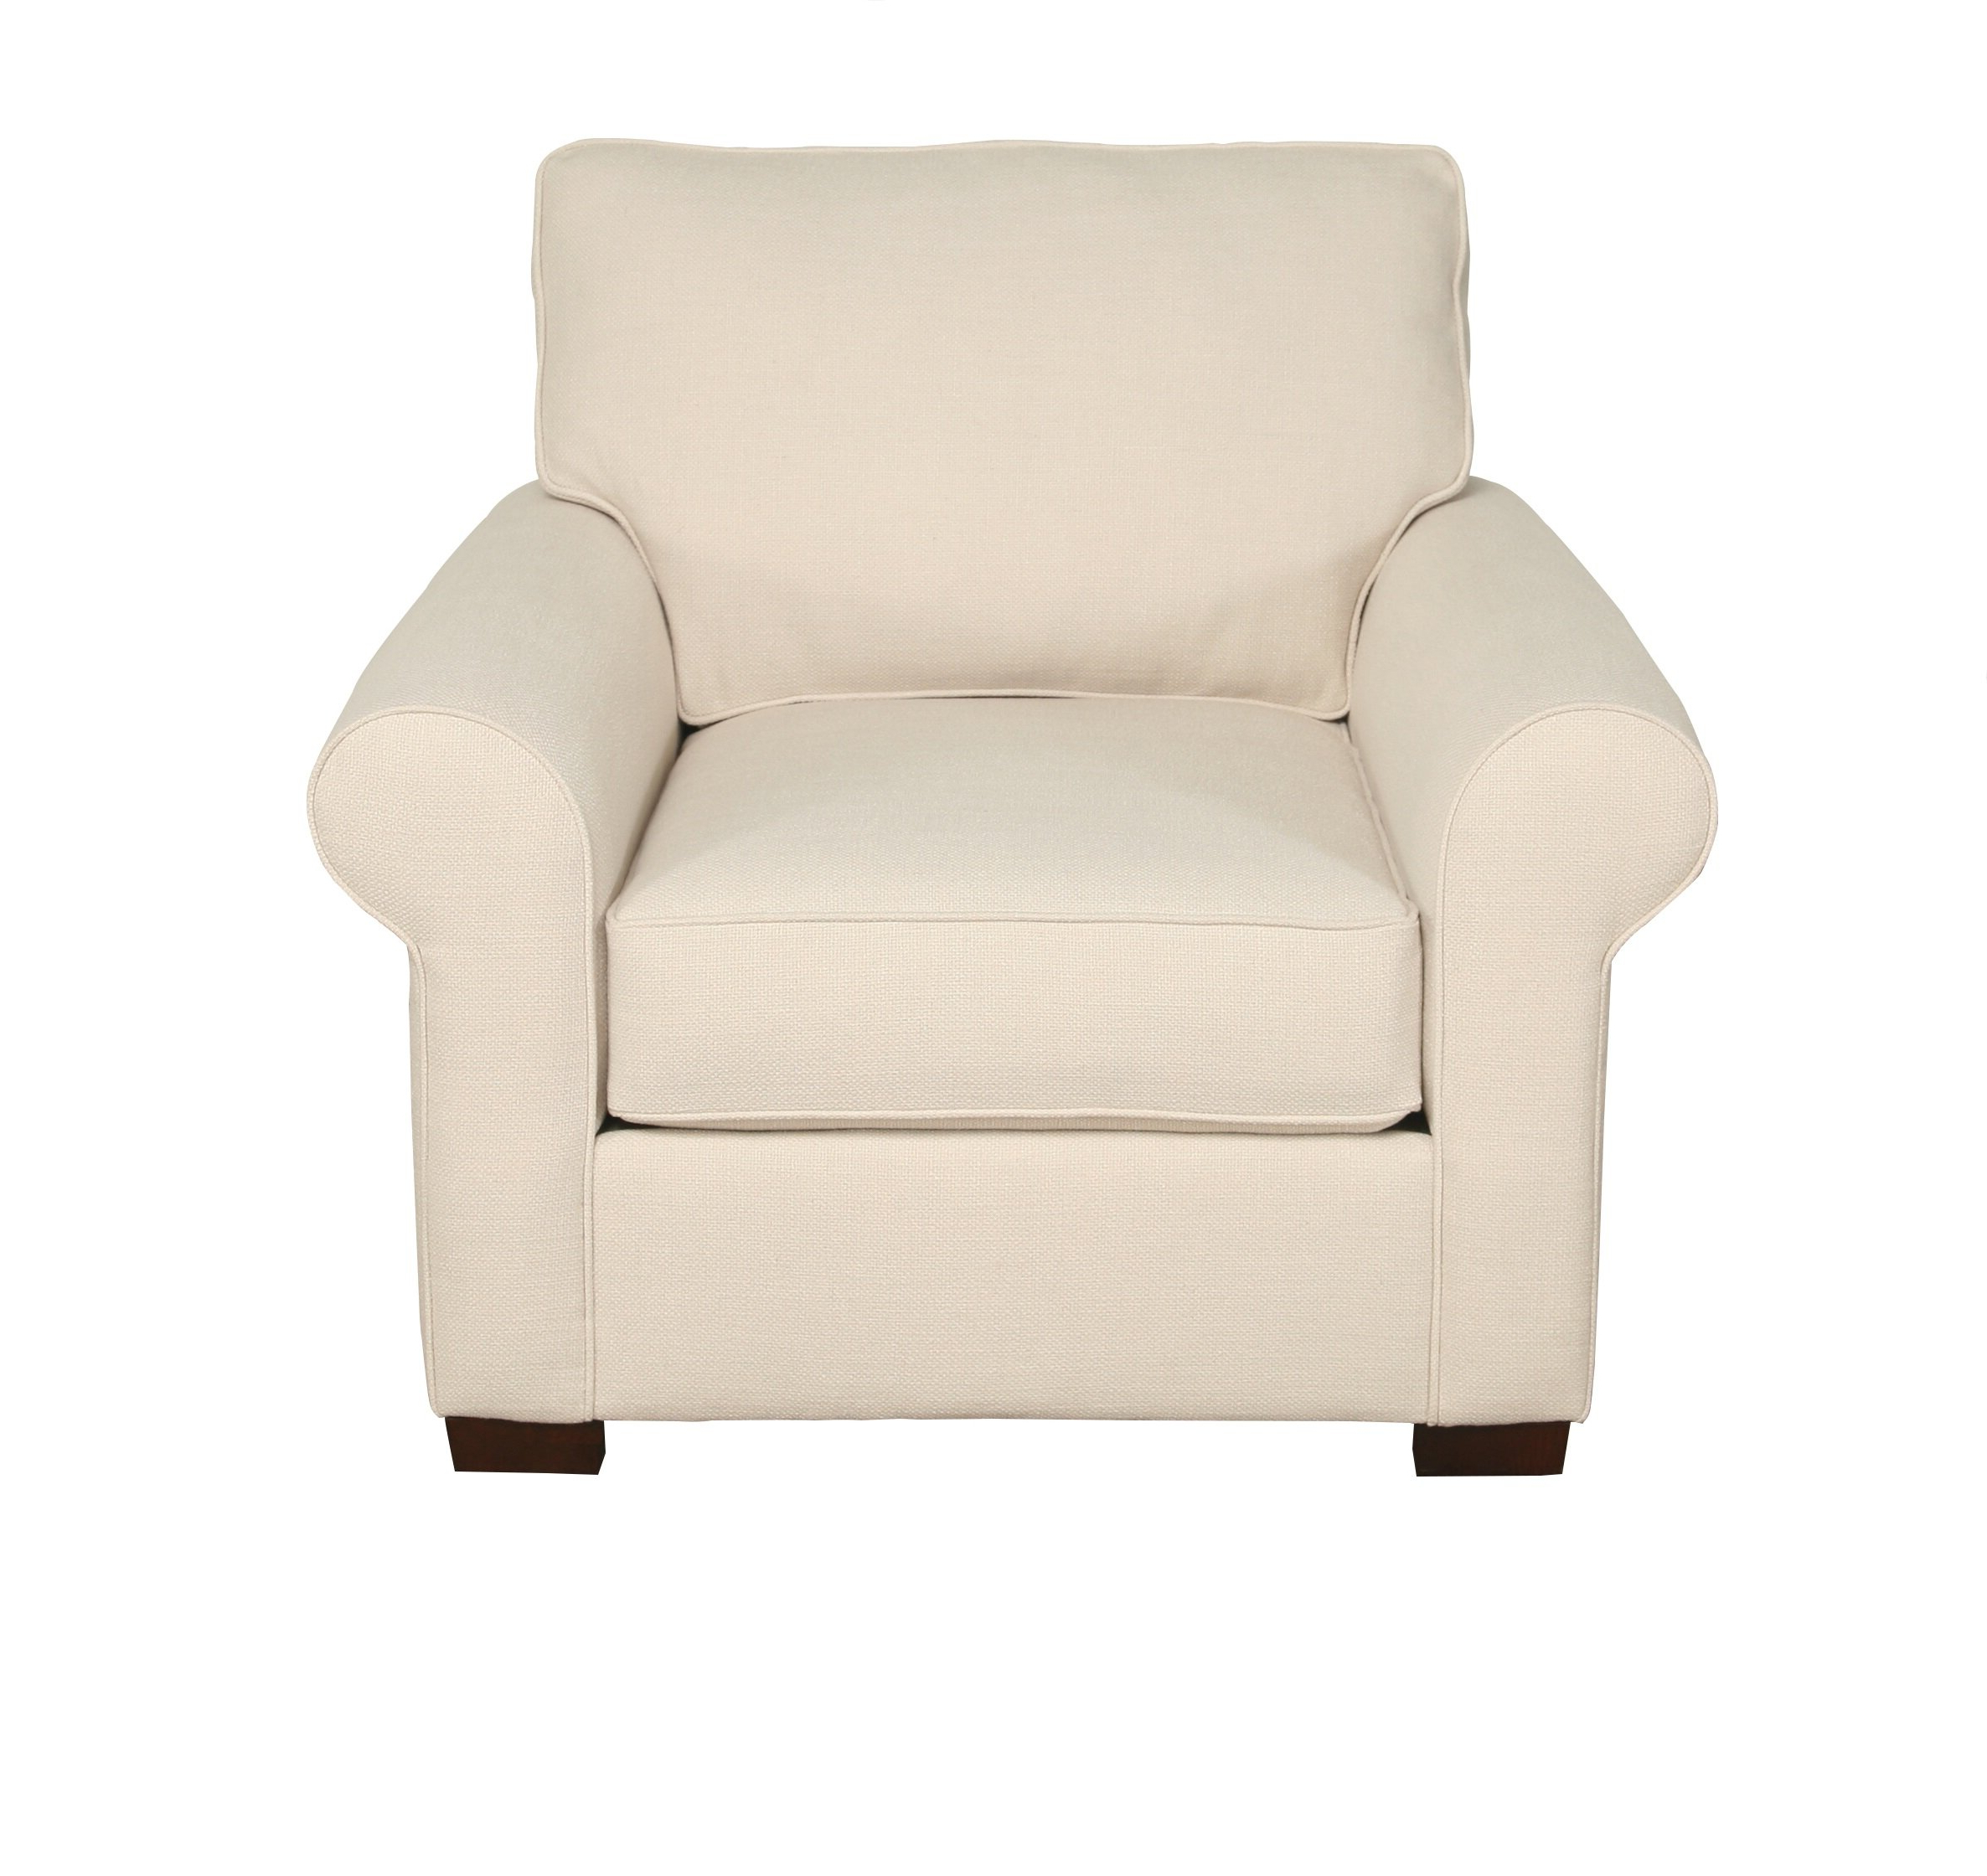 Armchair With Popular Hanner Polyester Armchairs (View 13 of 20)